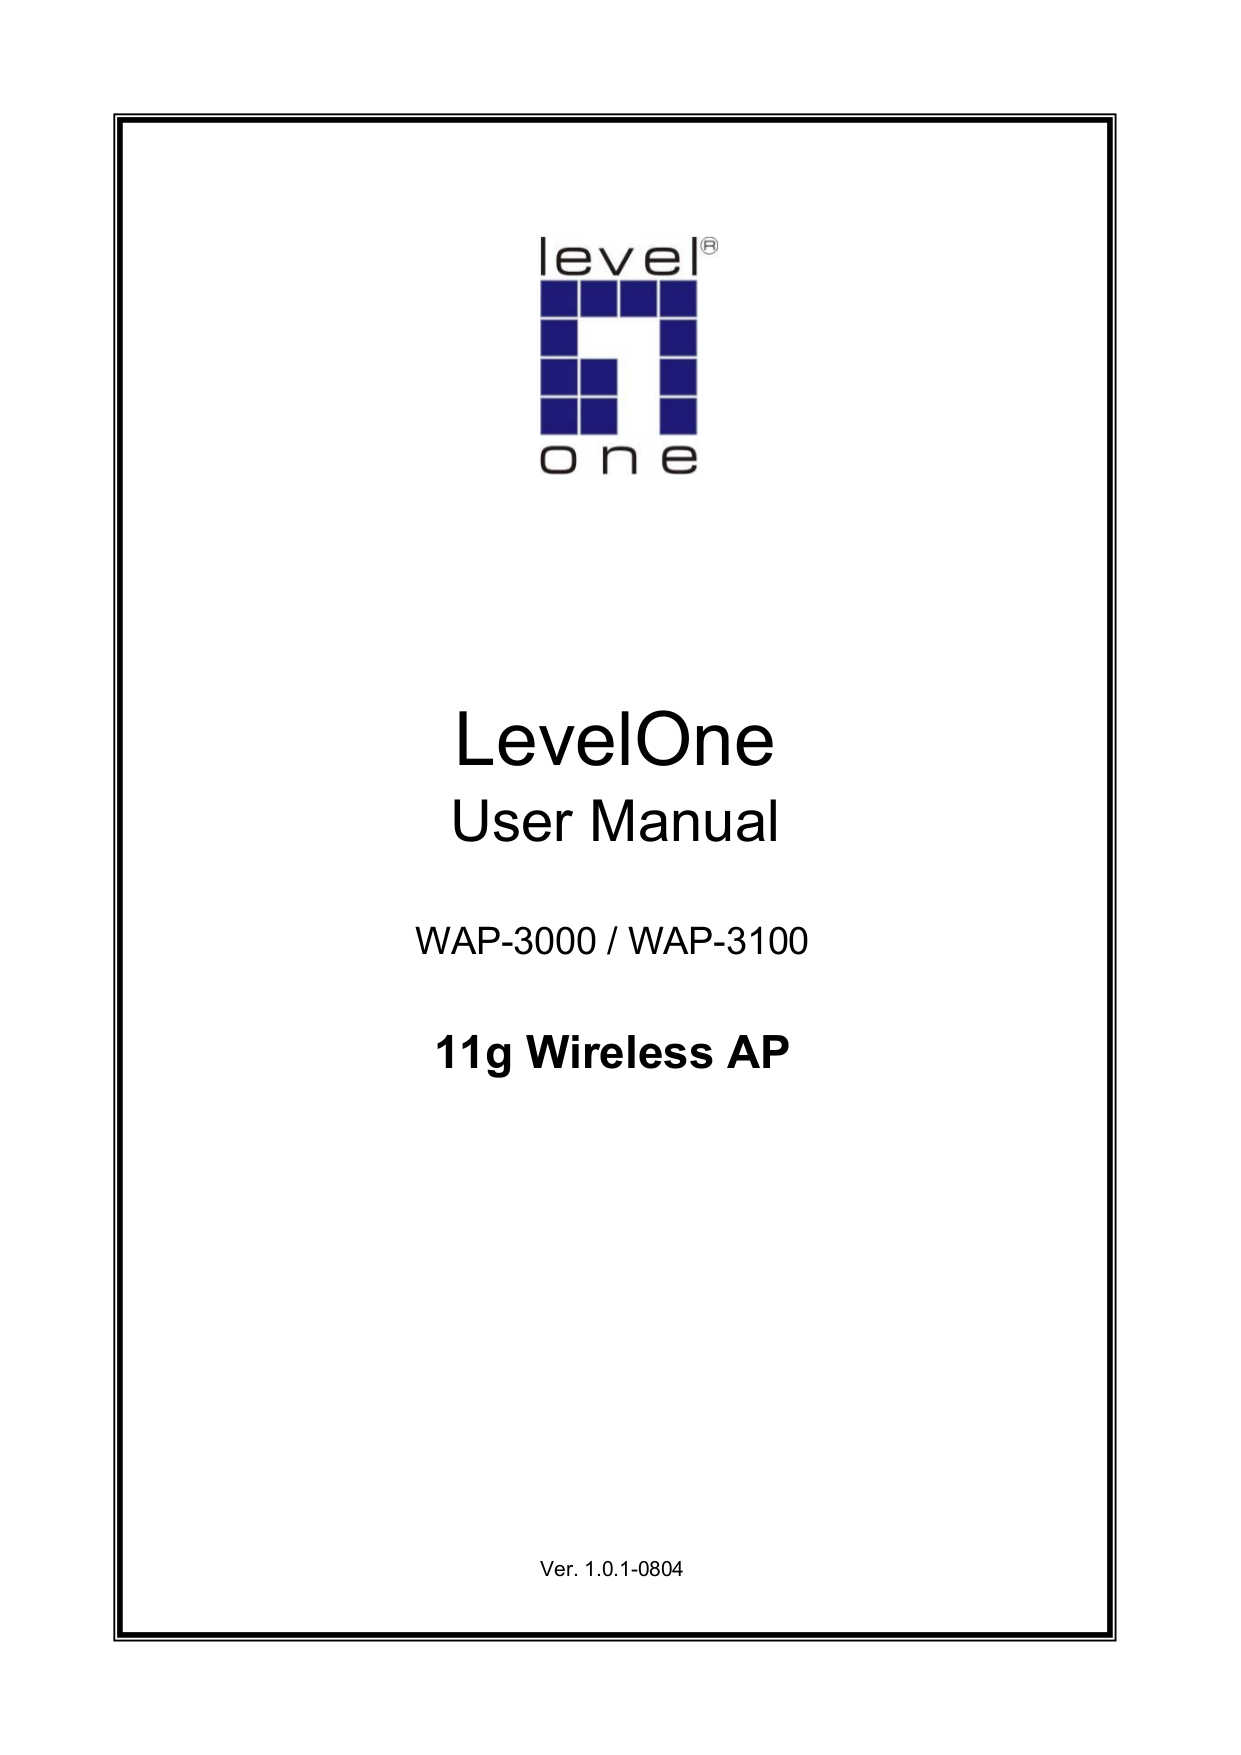 pdf for LevelOne Other WAP-3000 Wireless Access Point manual